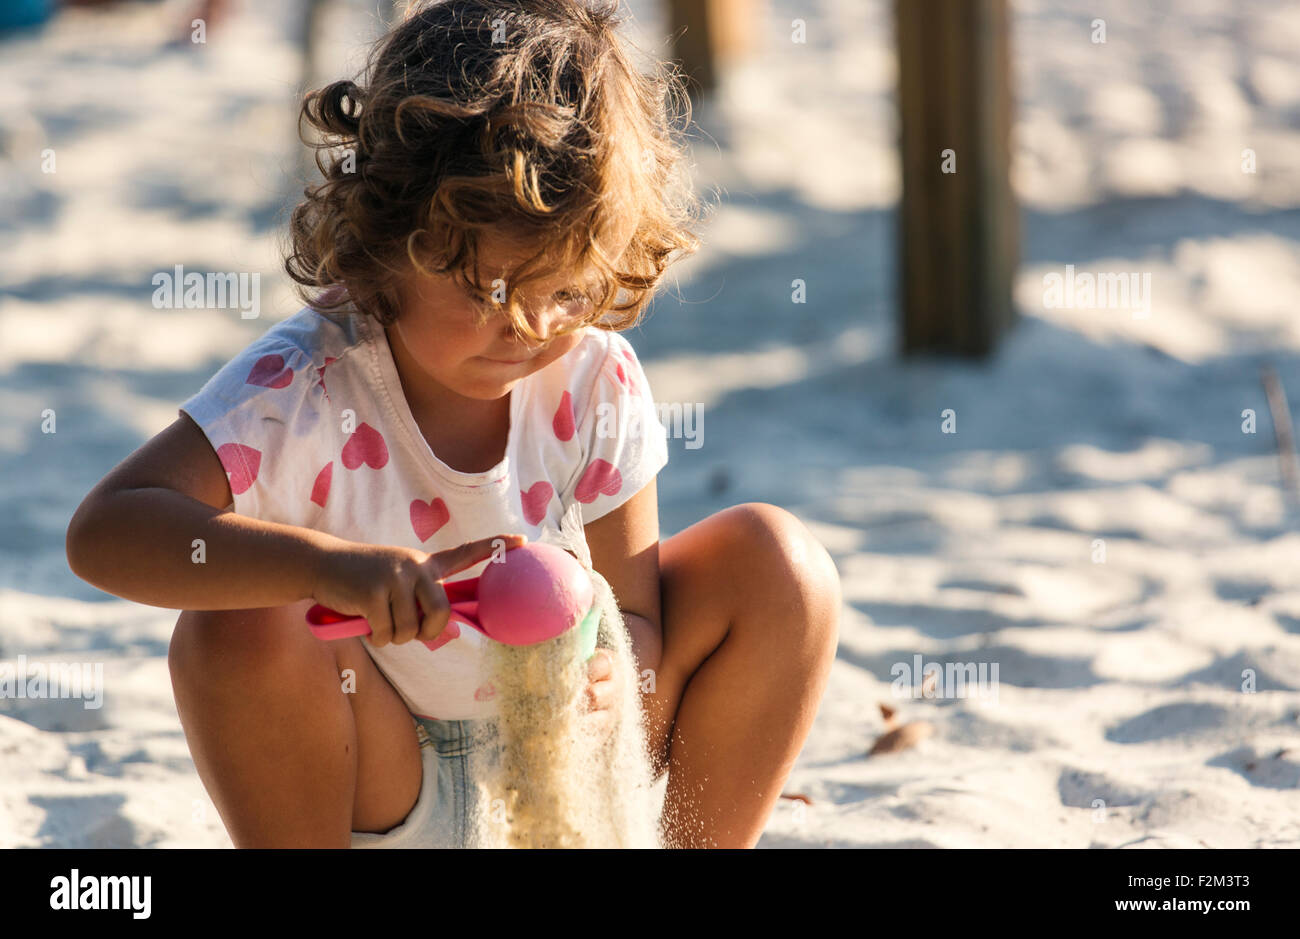 Little girl playing in sandbox on playground - Stock Image